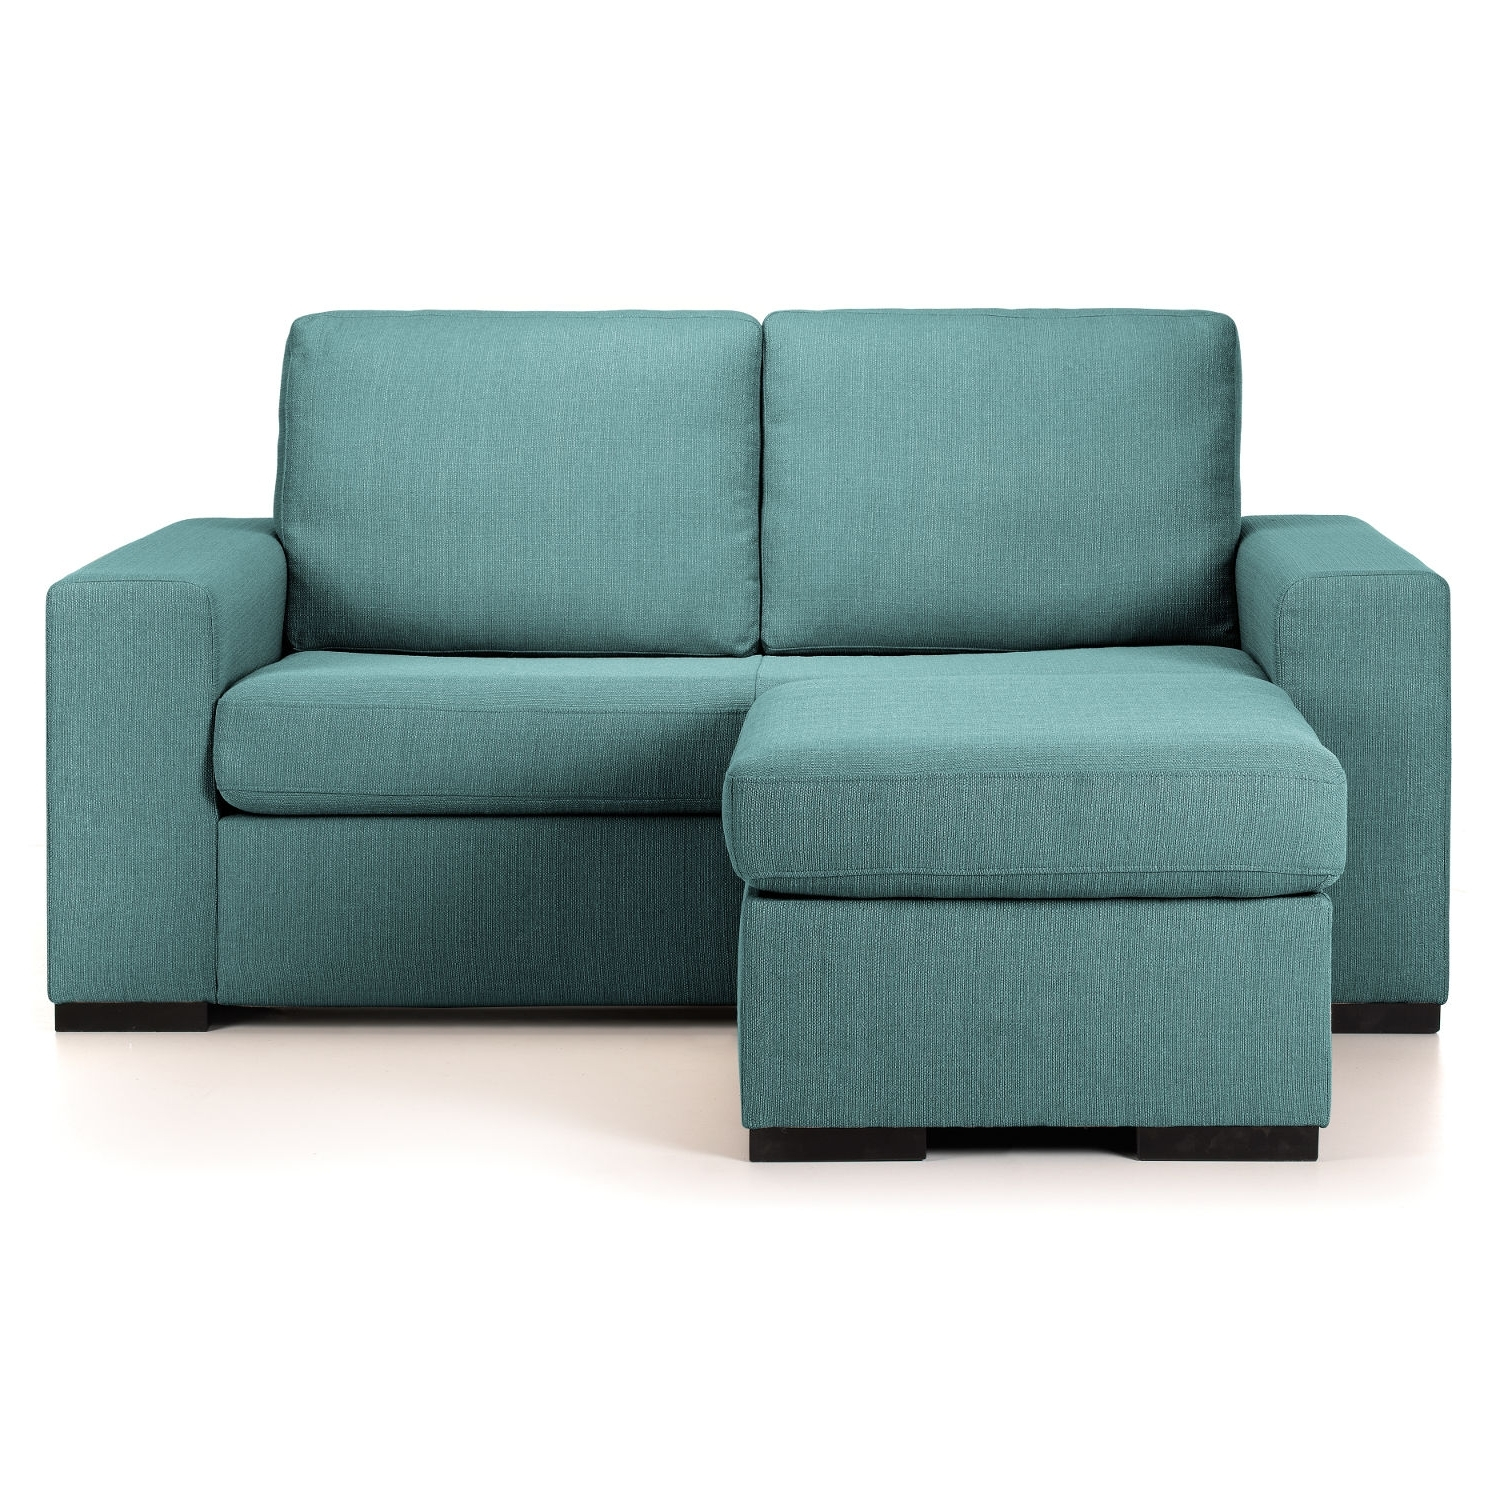 Well Liked Chaise Sofa Beds Inside Frances 4 In 1 Corner Chaise Sofa Bed With Storage Footstool (View 15 of 15)